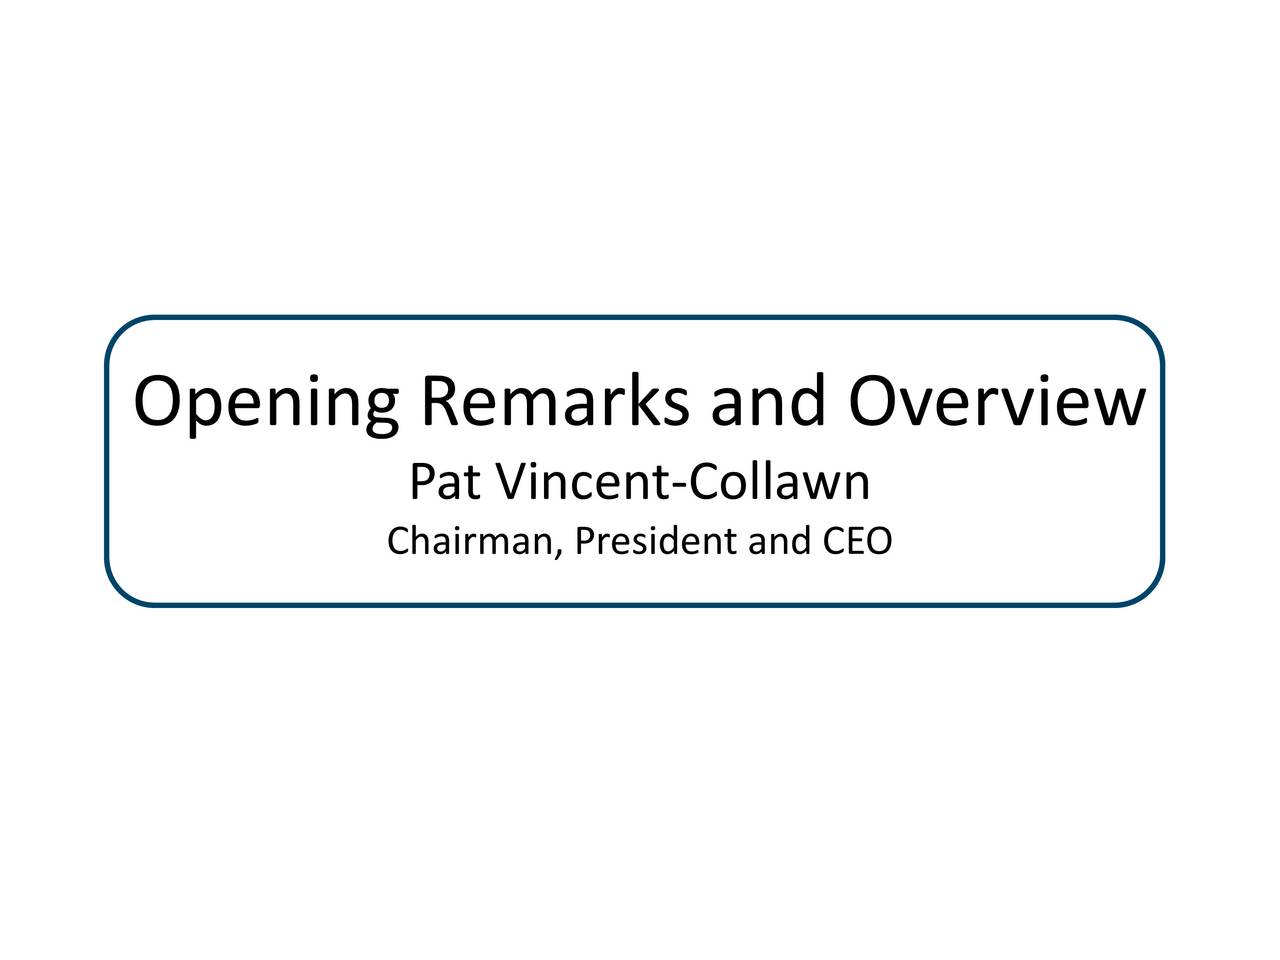 Pat Vincent-Collawn Chairman, President and CEO